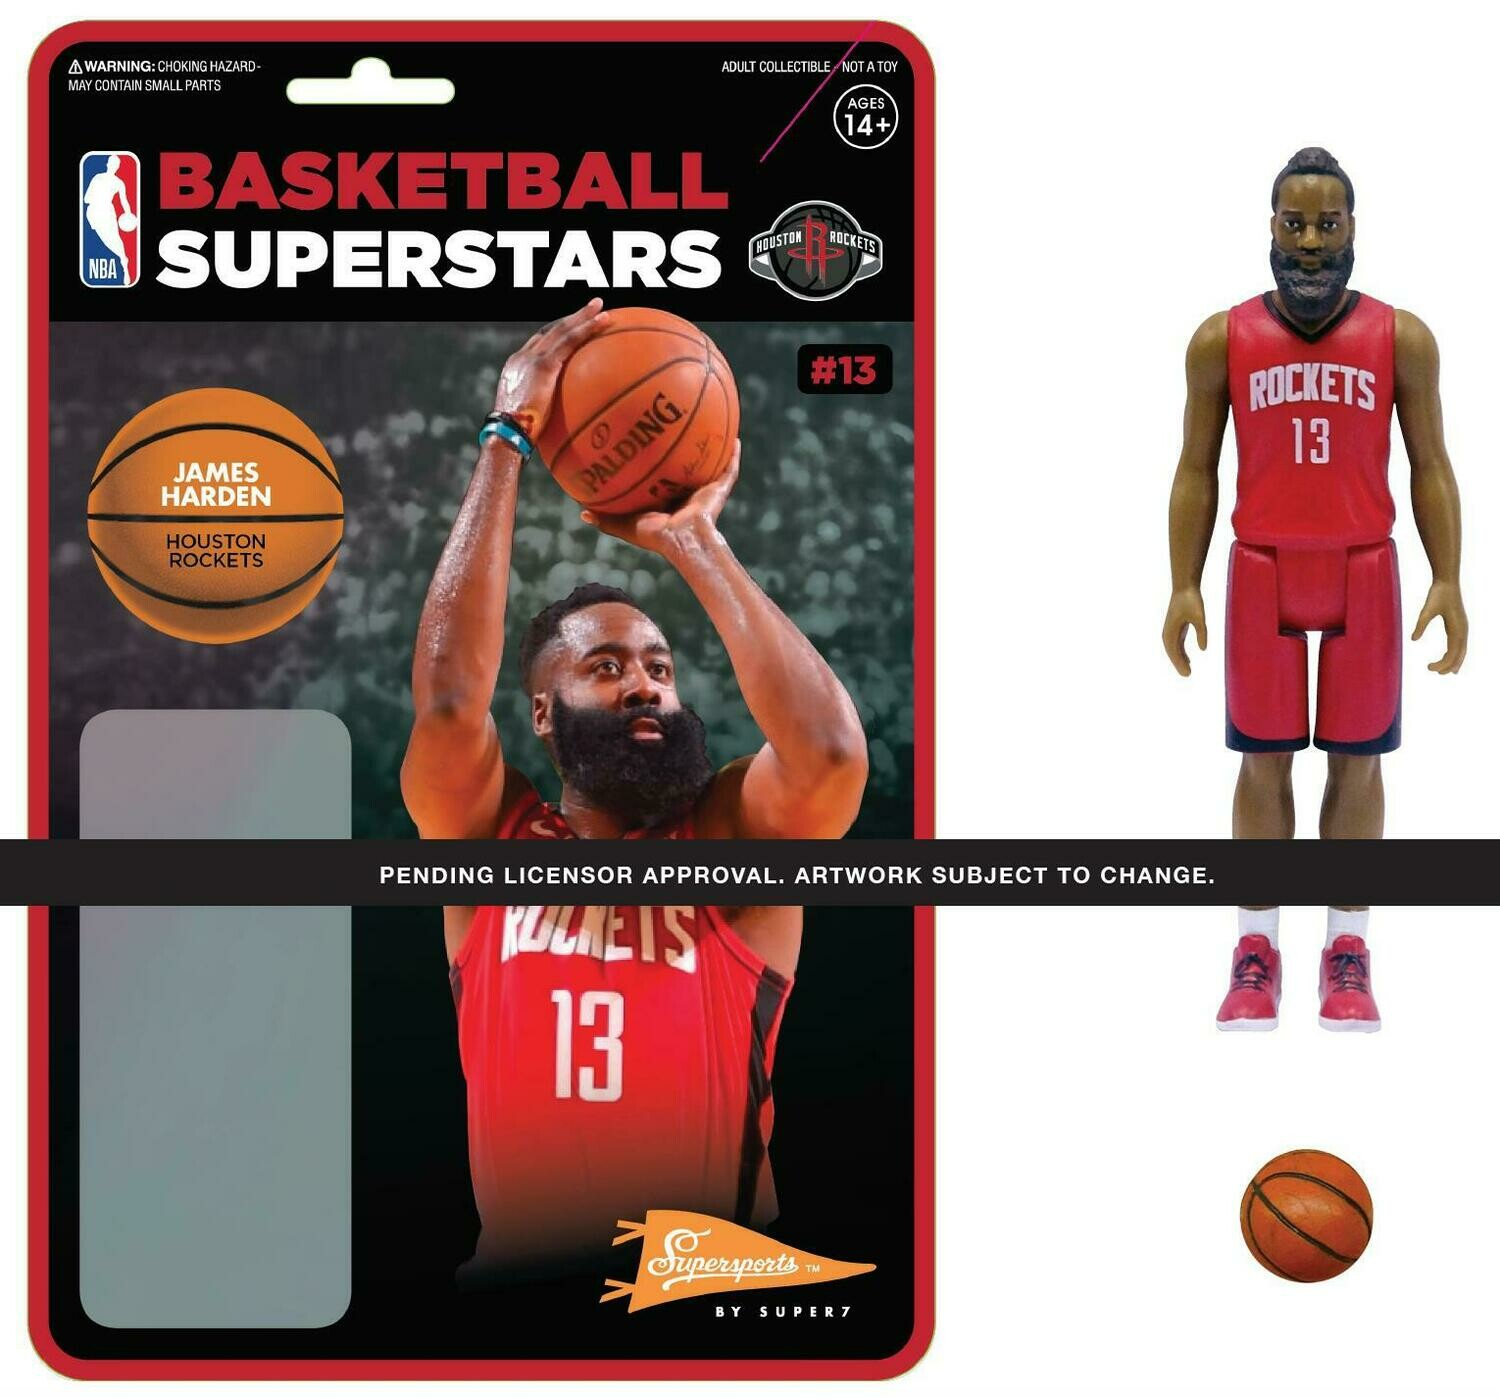 PRE-ORDER NBA REACTION FIGURE - JAMES HARDEN (ROCKETS)